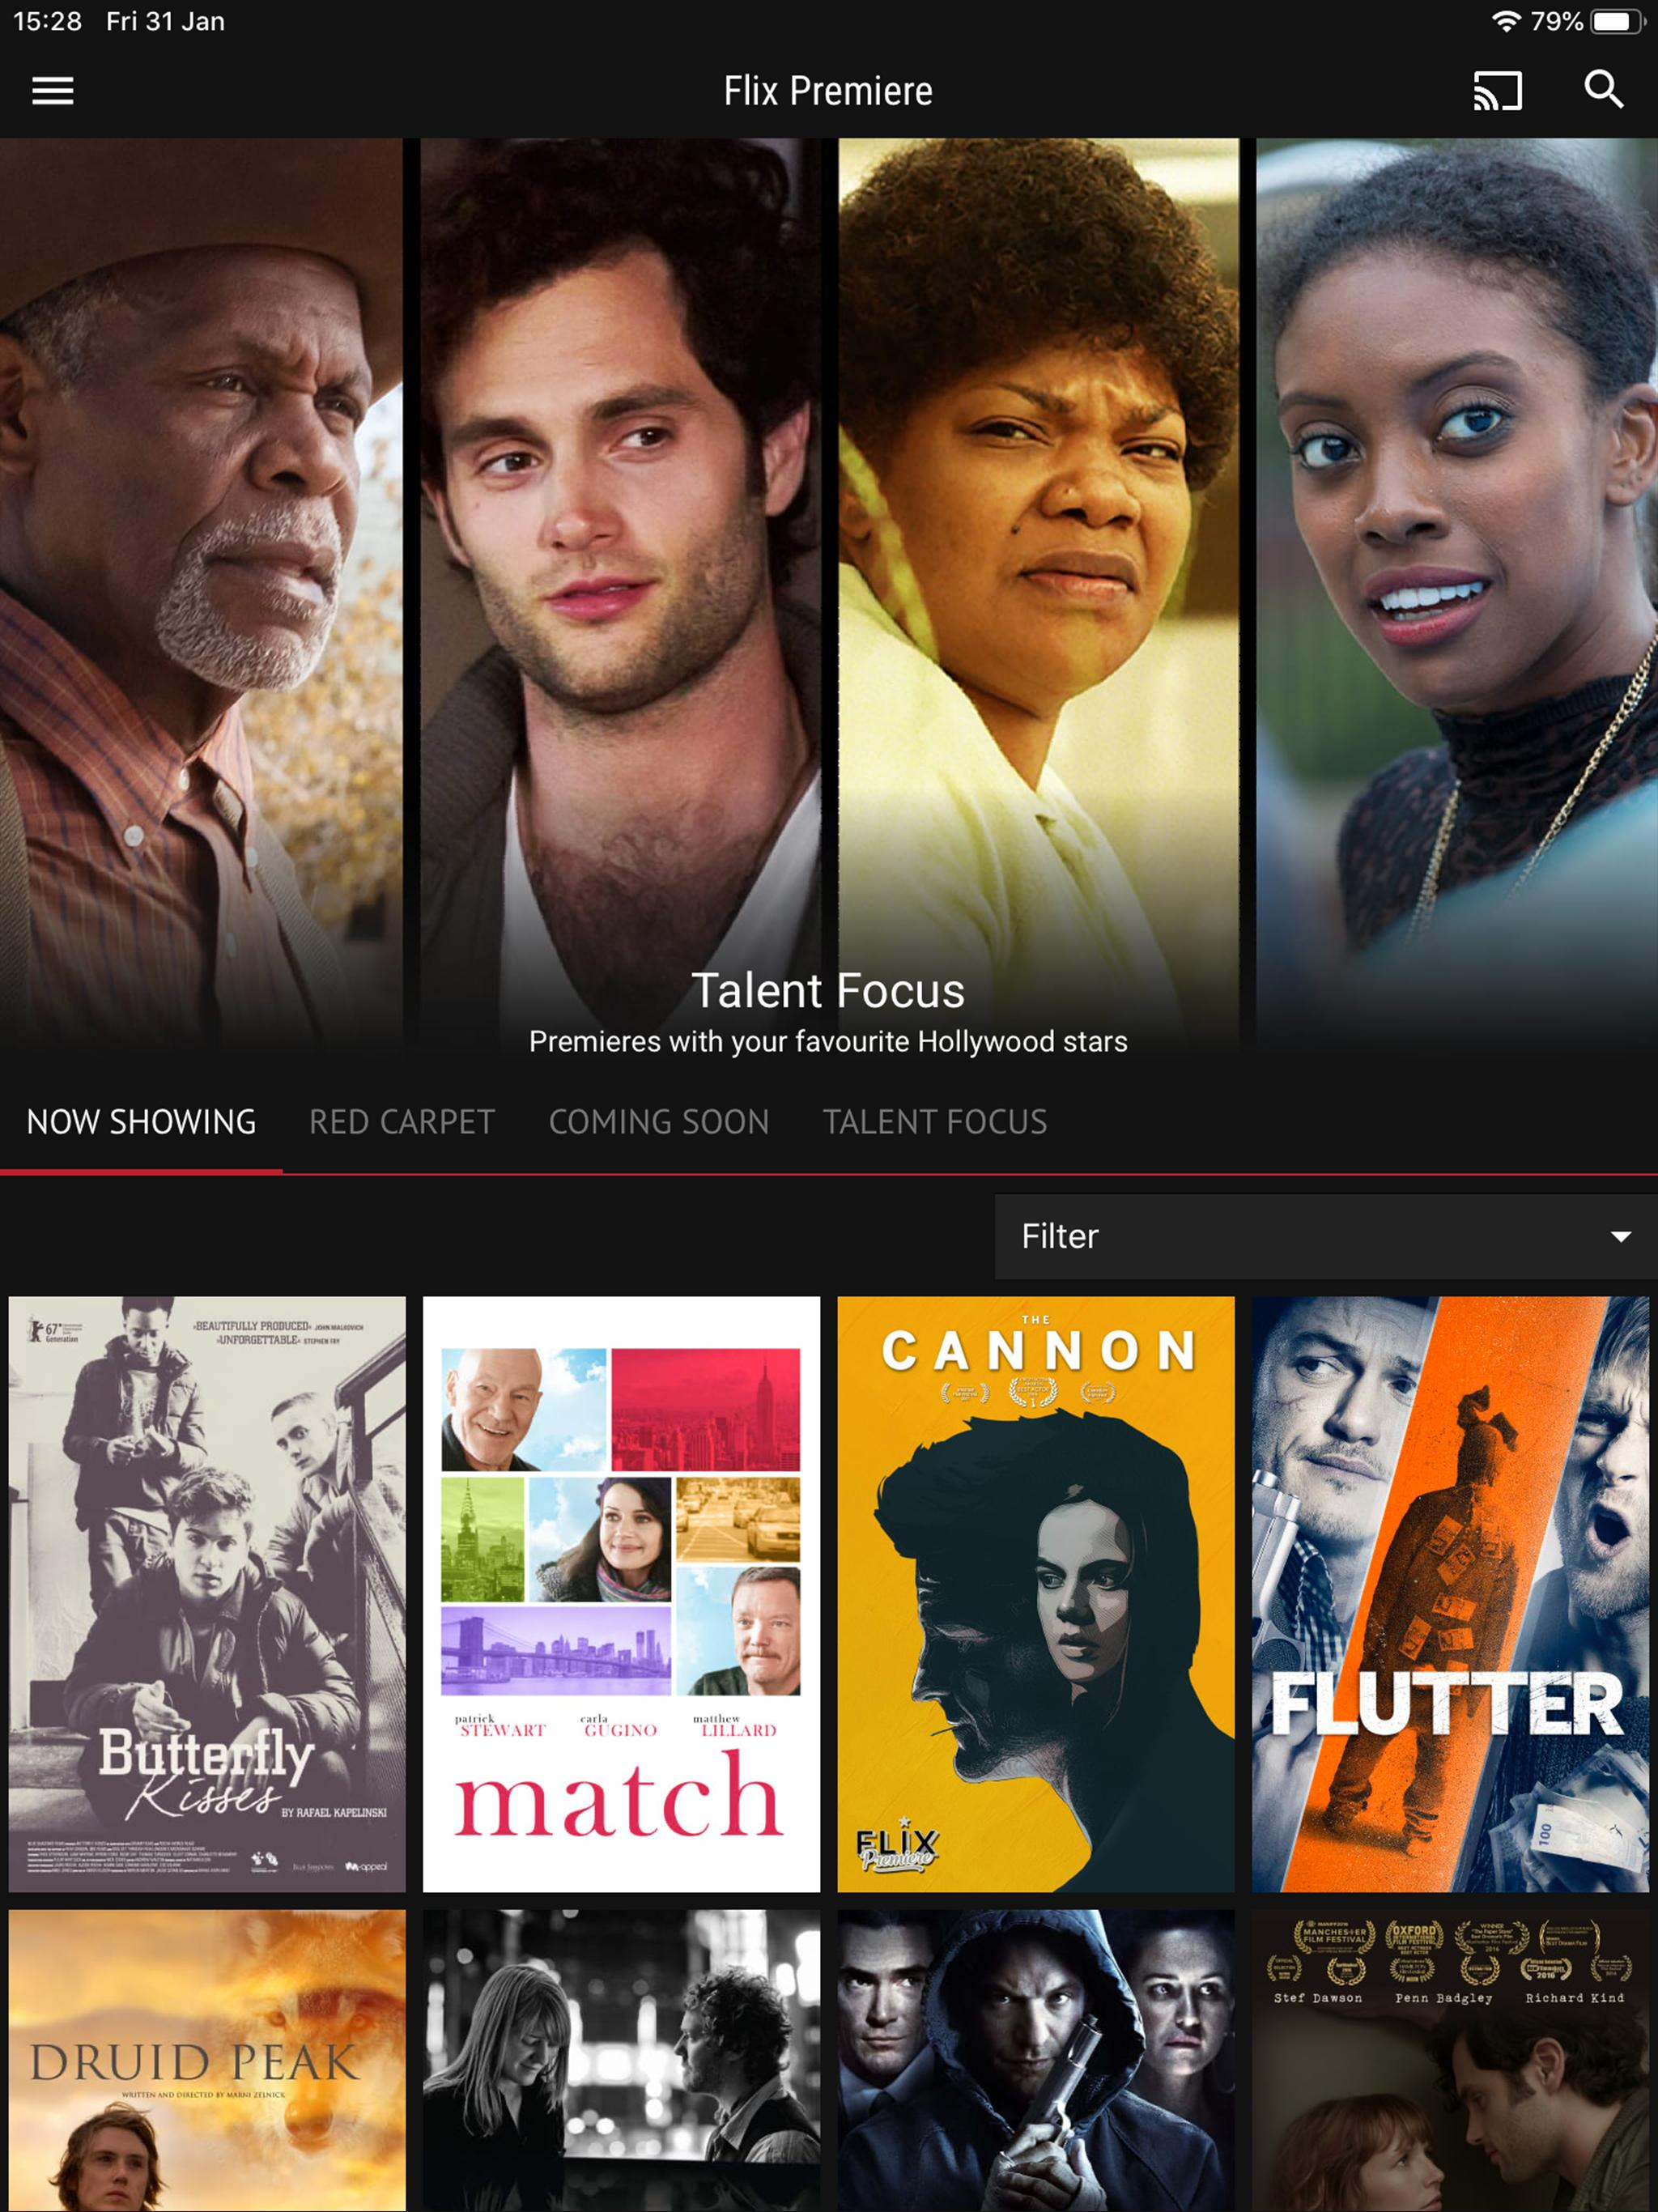 Flix Download flix premiere for android - apk download